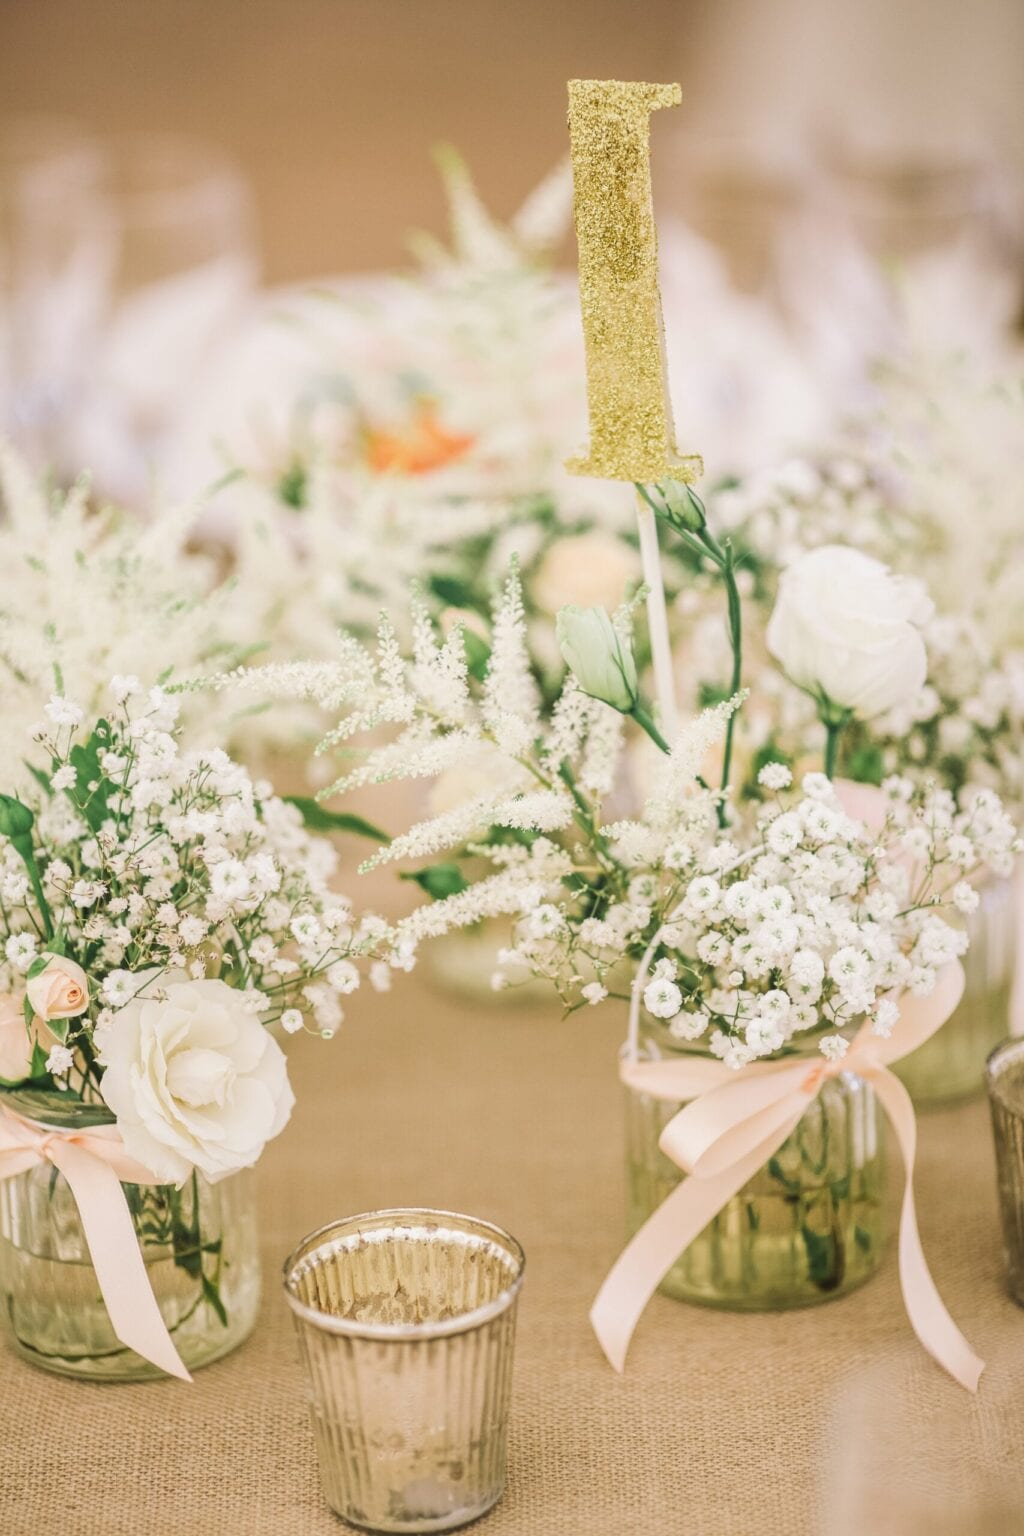 dutch wedding planners numbered centrepiece arrangements and floral table decorations